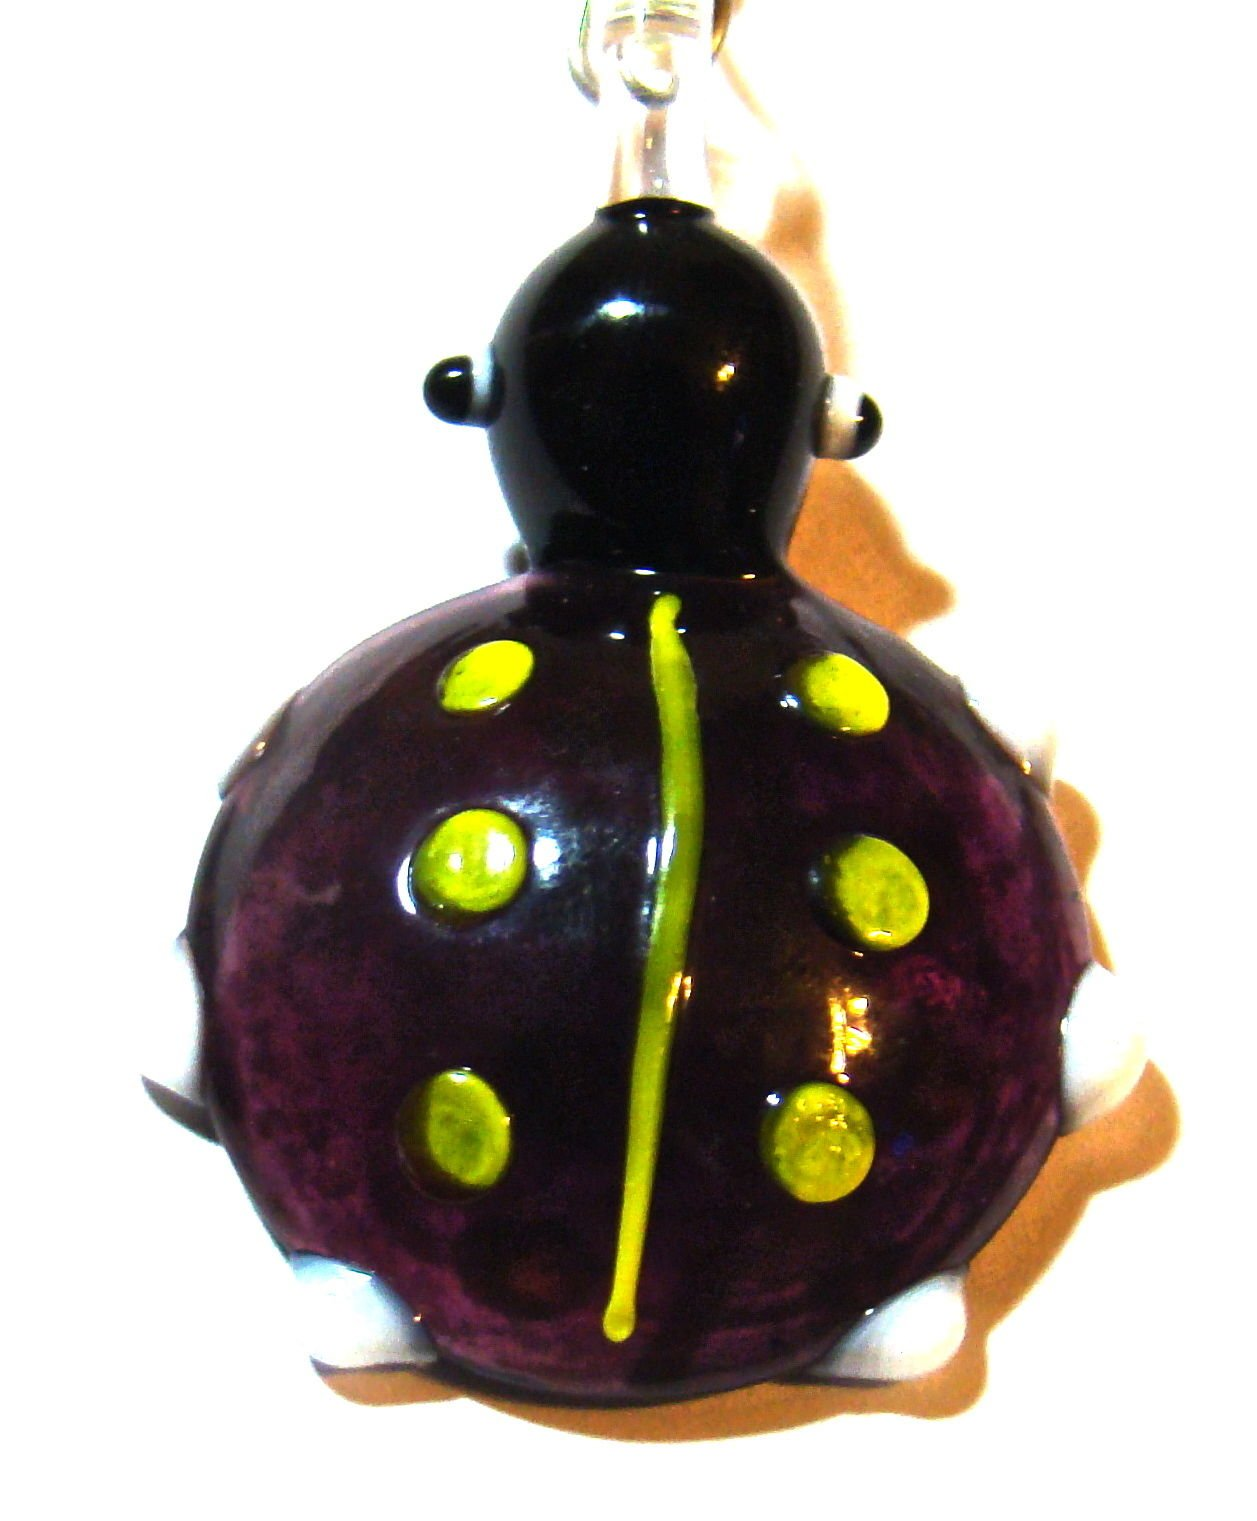 Gatton assorted ladybug ceiling fan light chain pull hand crafted by Gatton